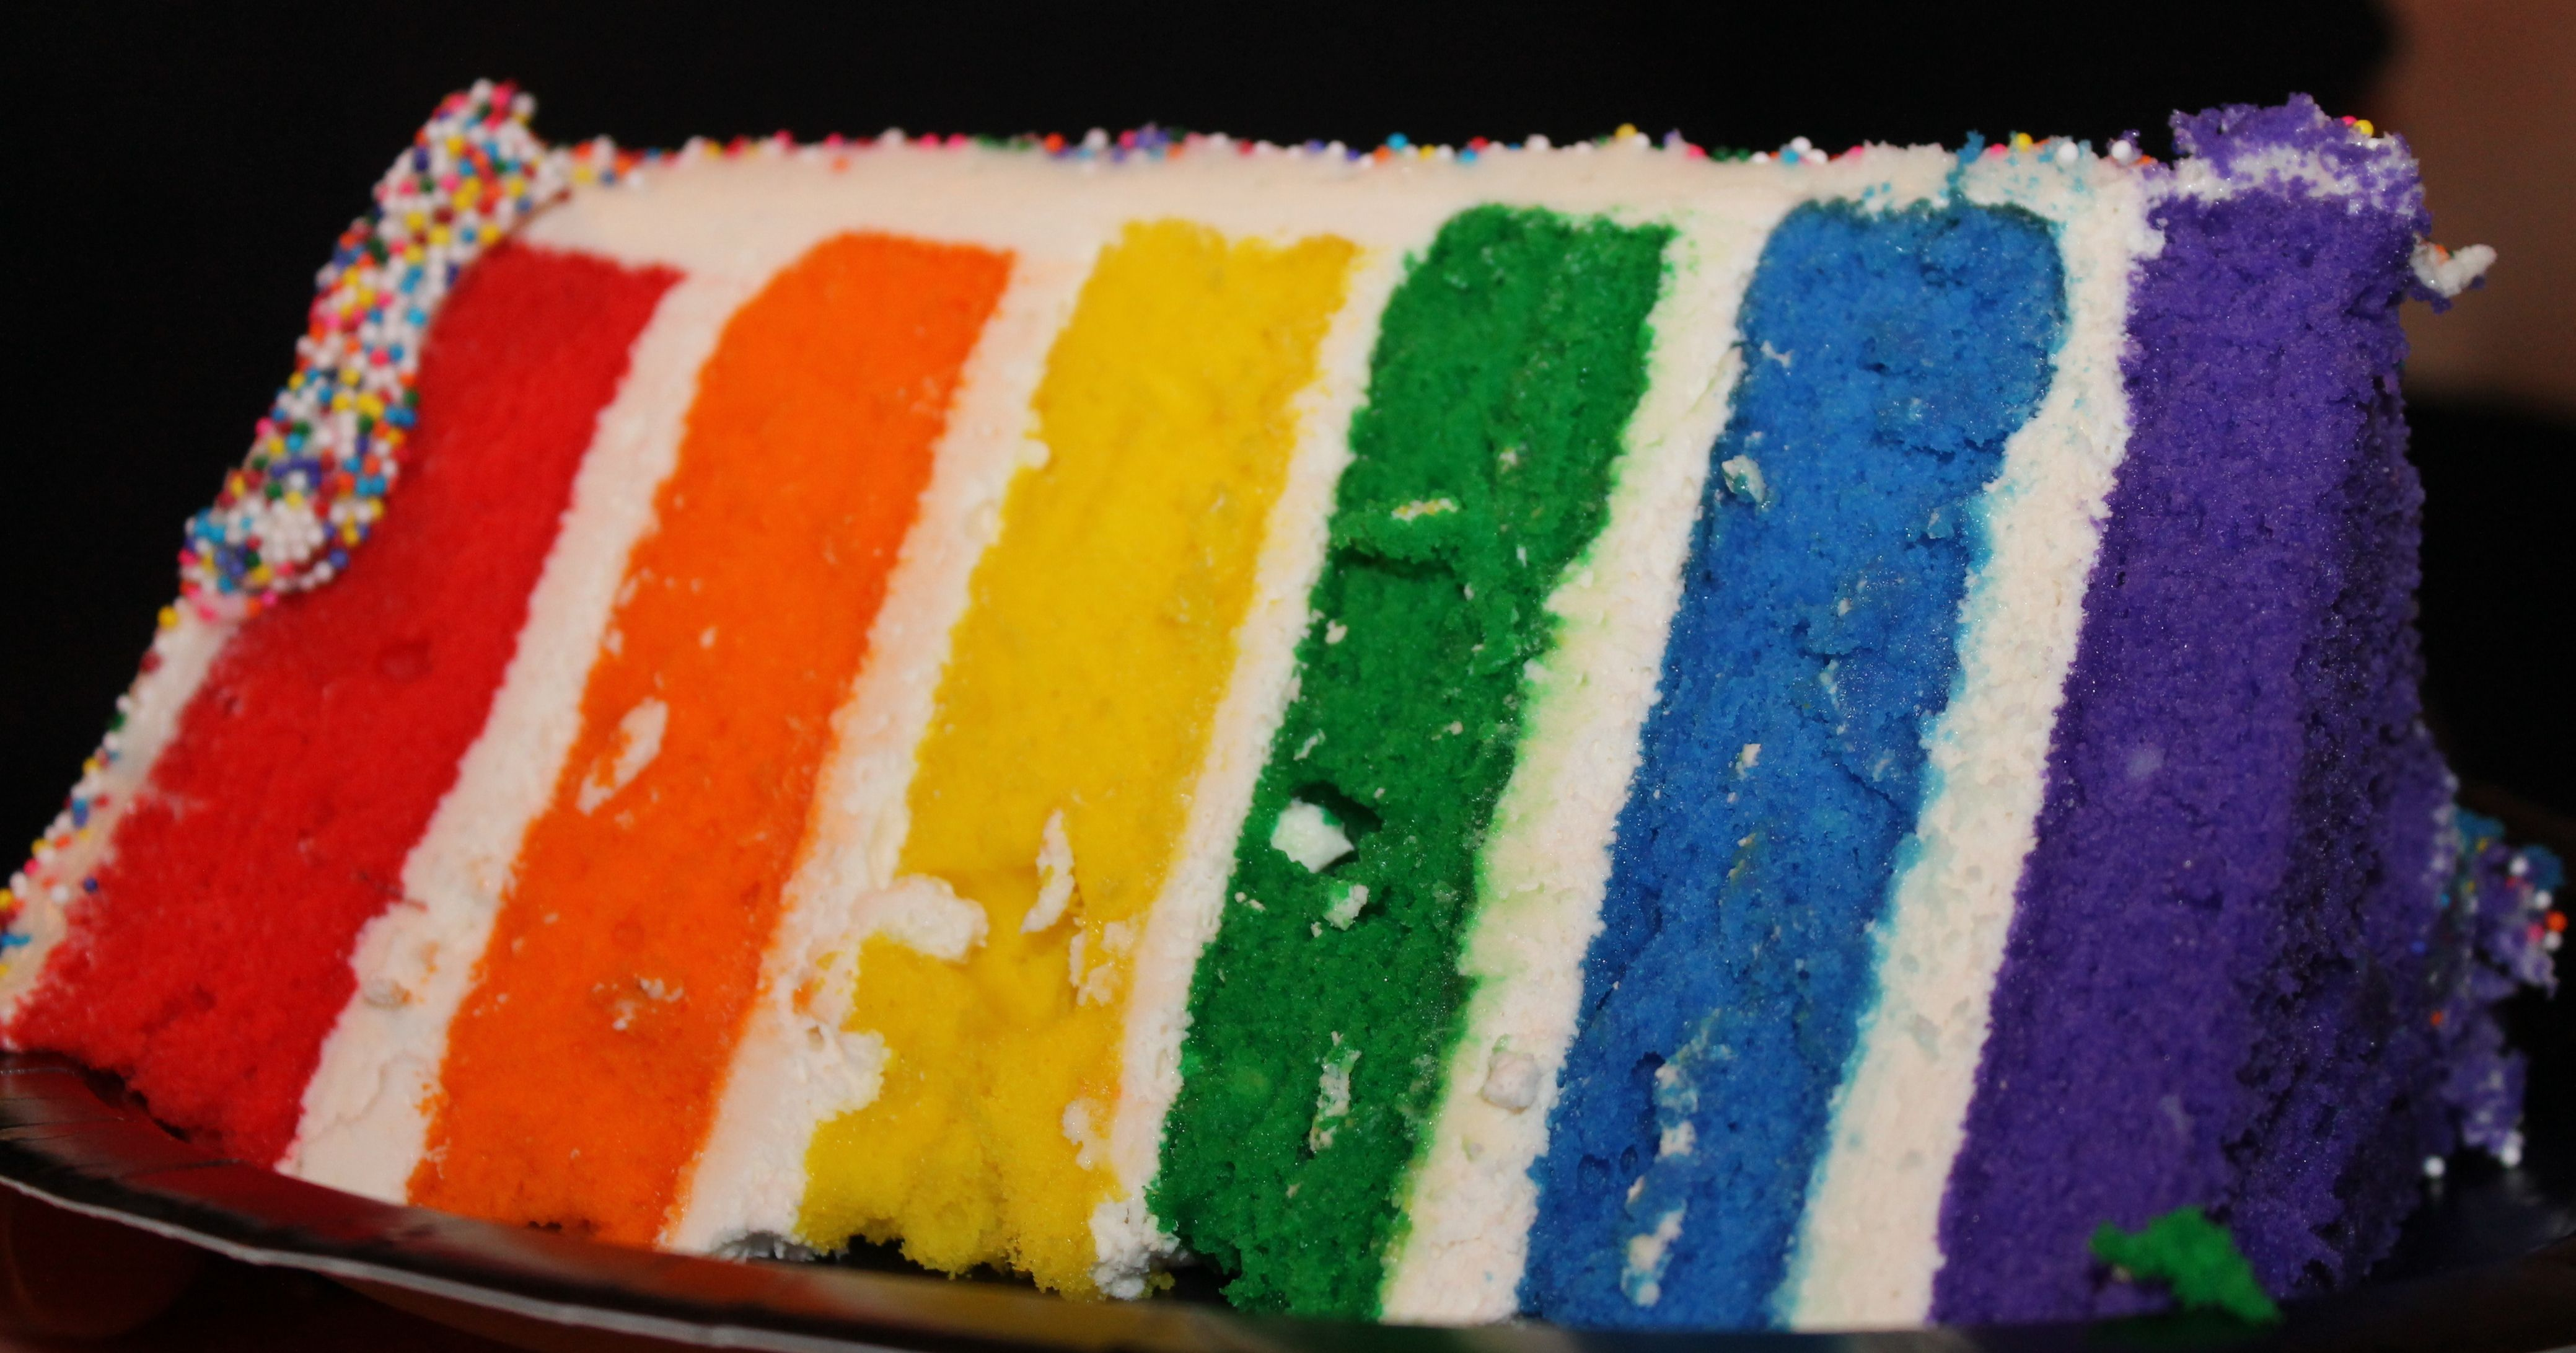 Rainbow cake  one box white cake mix will make two cakes.  Measure the amount so they are the same size.  Make sure to add at least a cup of frosting between layers to let the colors stand out.  This cake took 4 batches of icing!